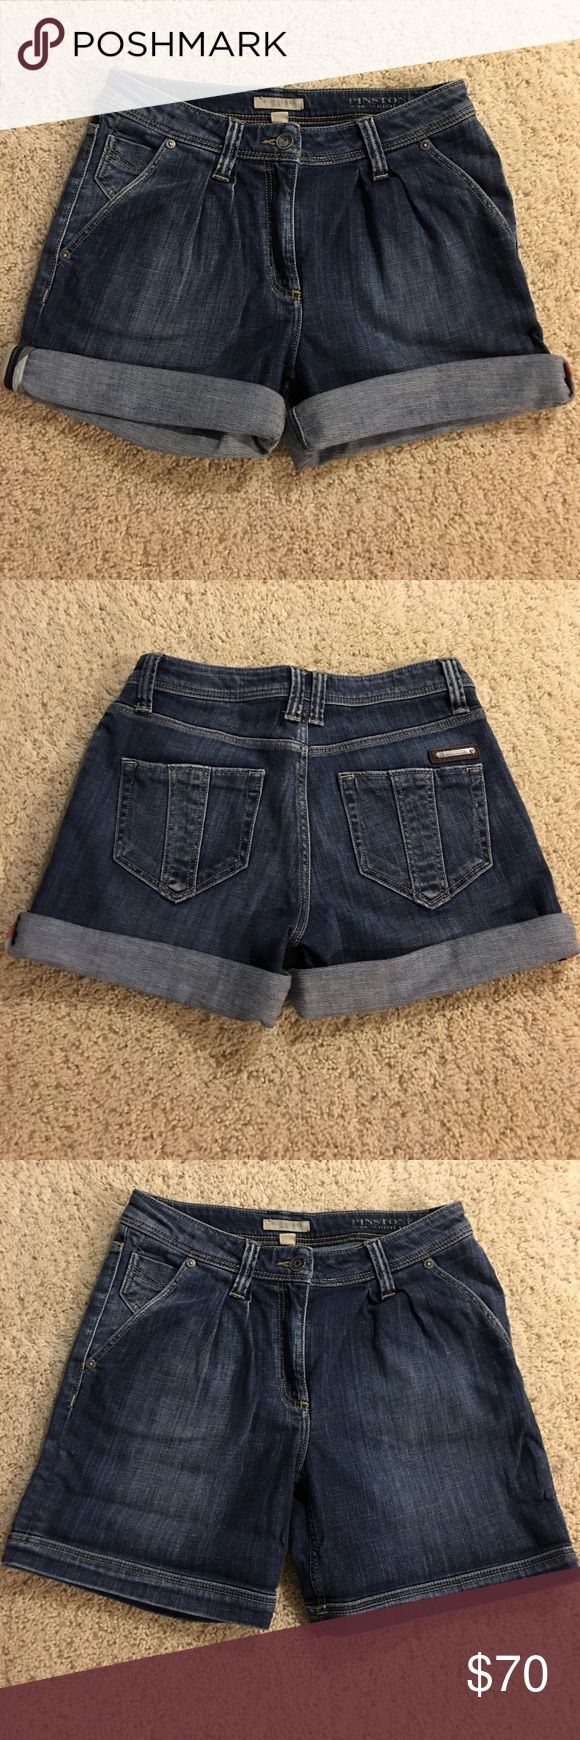 "Authentic Burberry Denim Shorts. Size 26. Excellent condition. Waist measures at 13"" laid flat. Can be worn rolled or down. Burberry Shorts Jean Shorts"